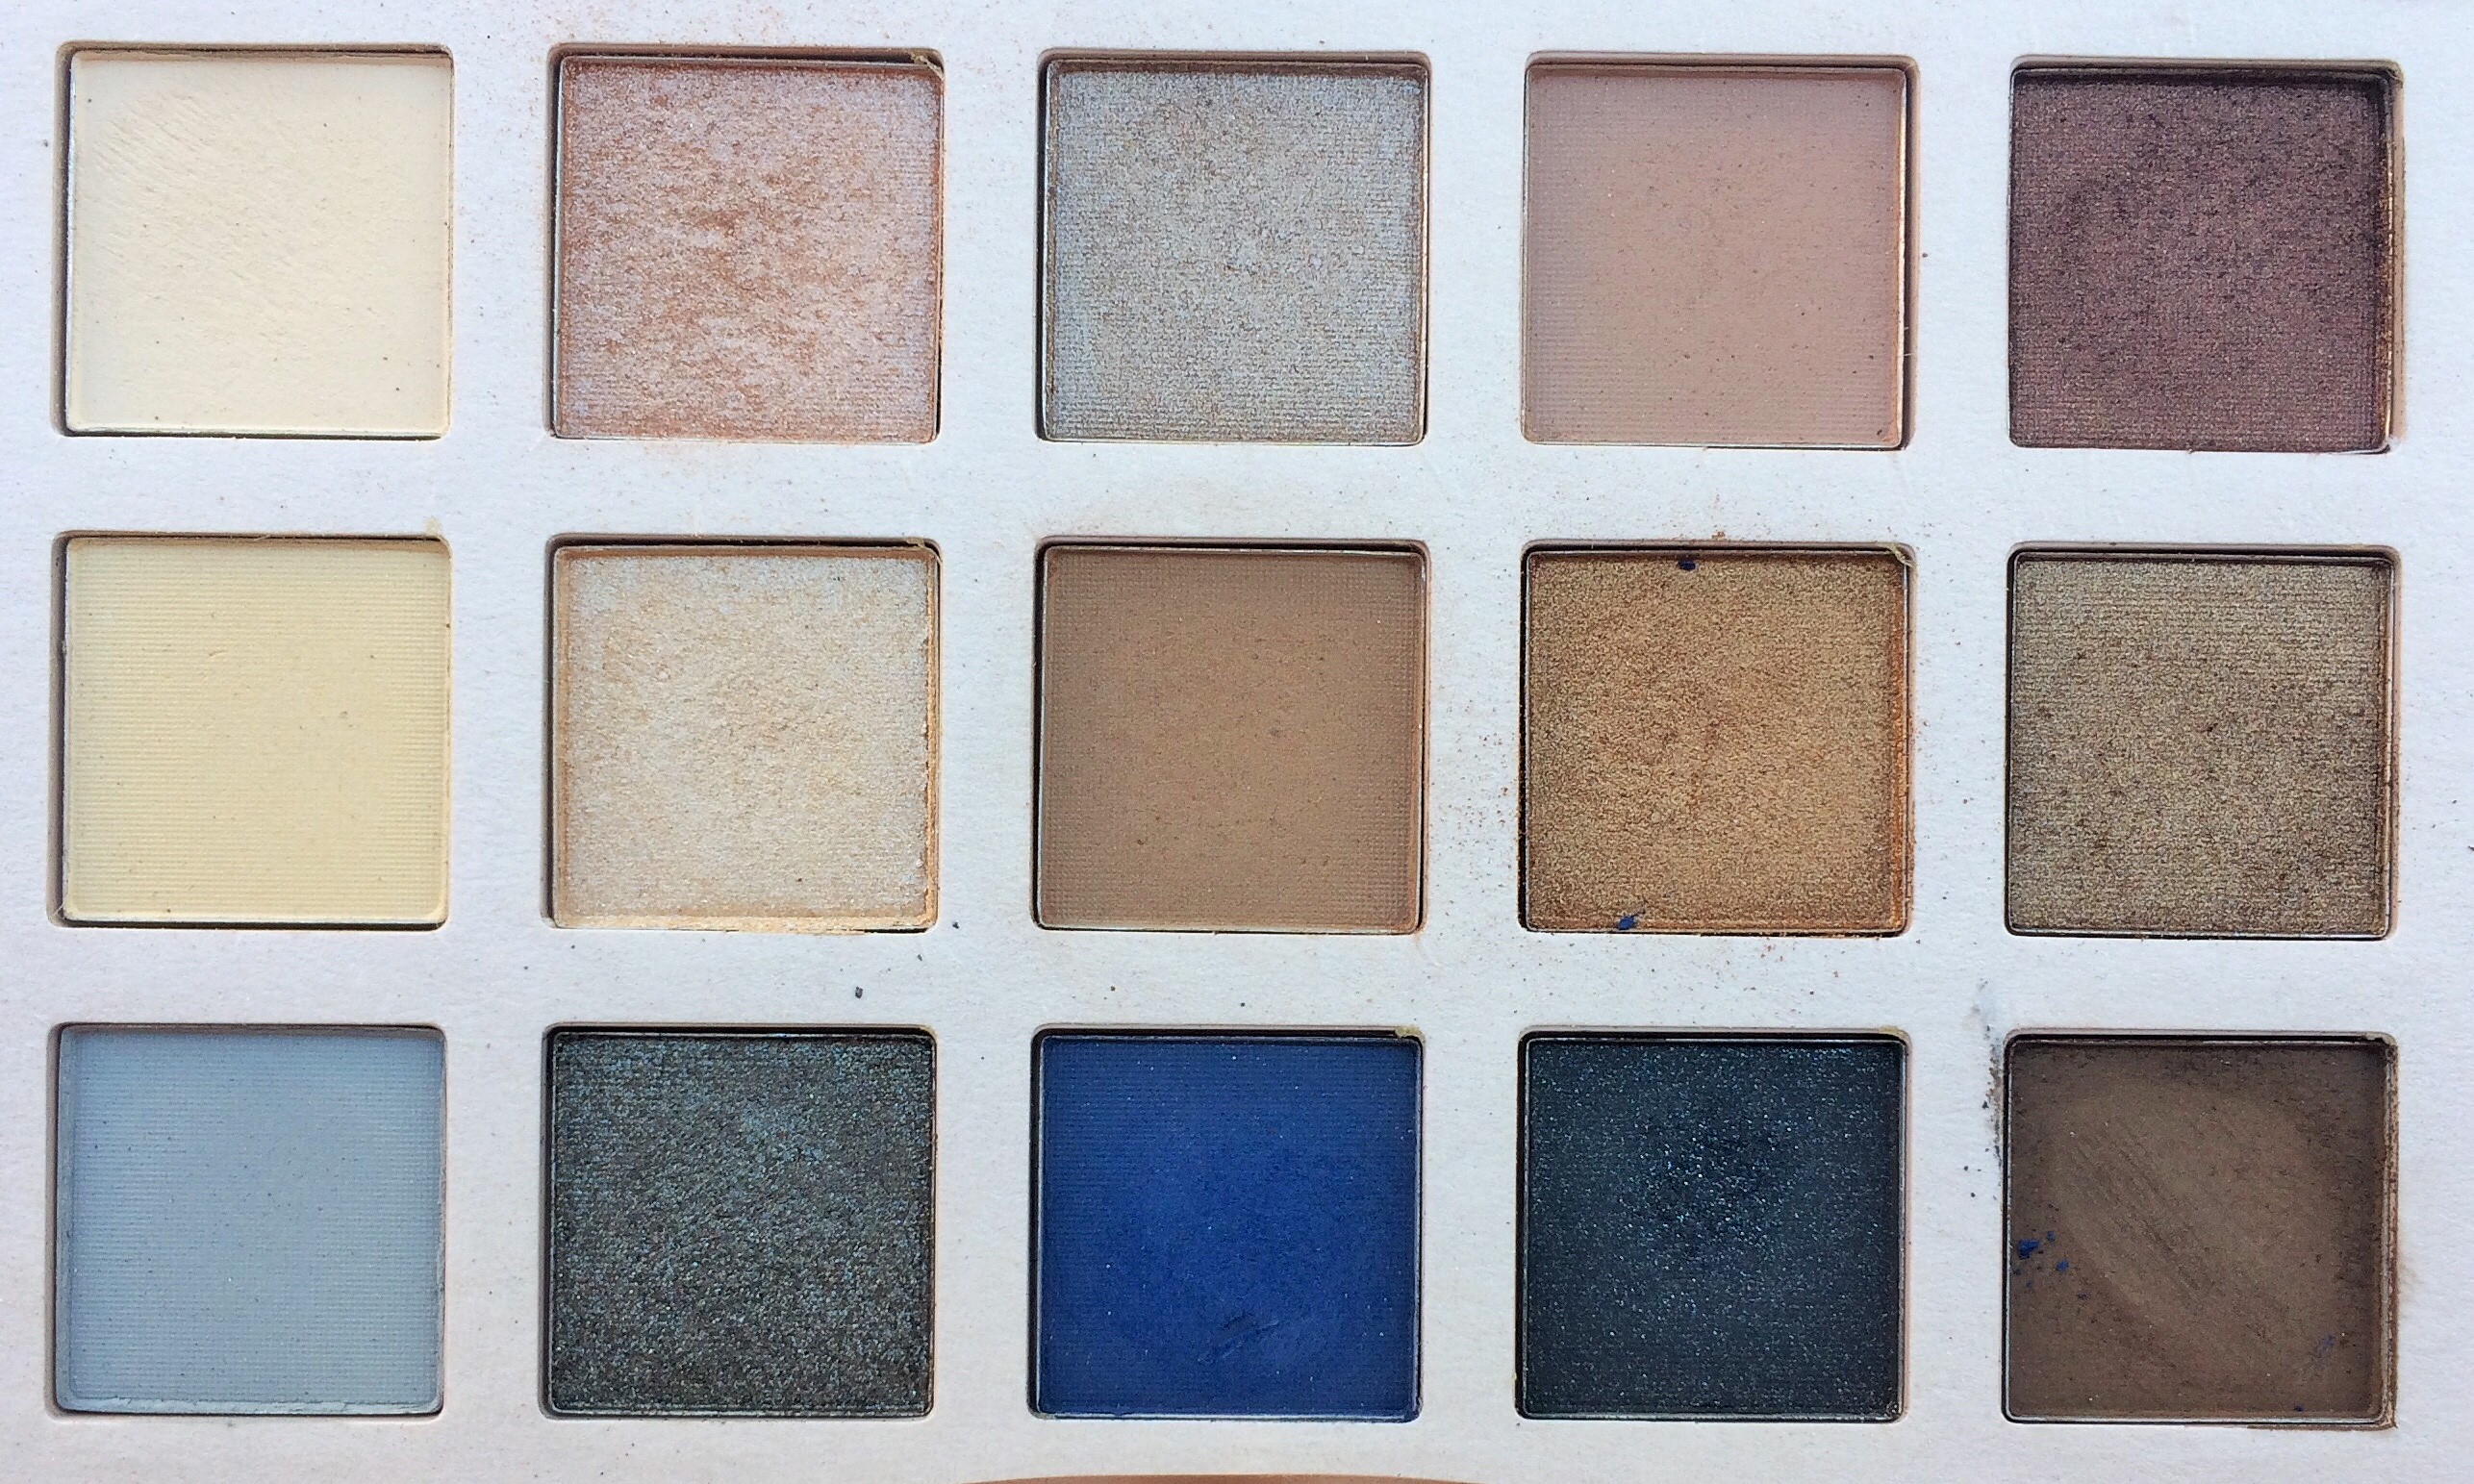 Sephora Once Upon A Palette (5)